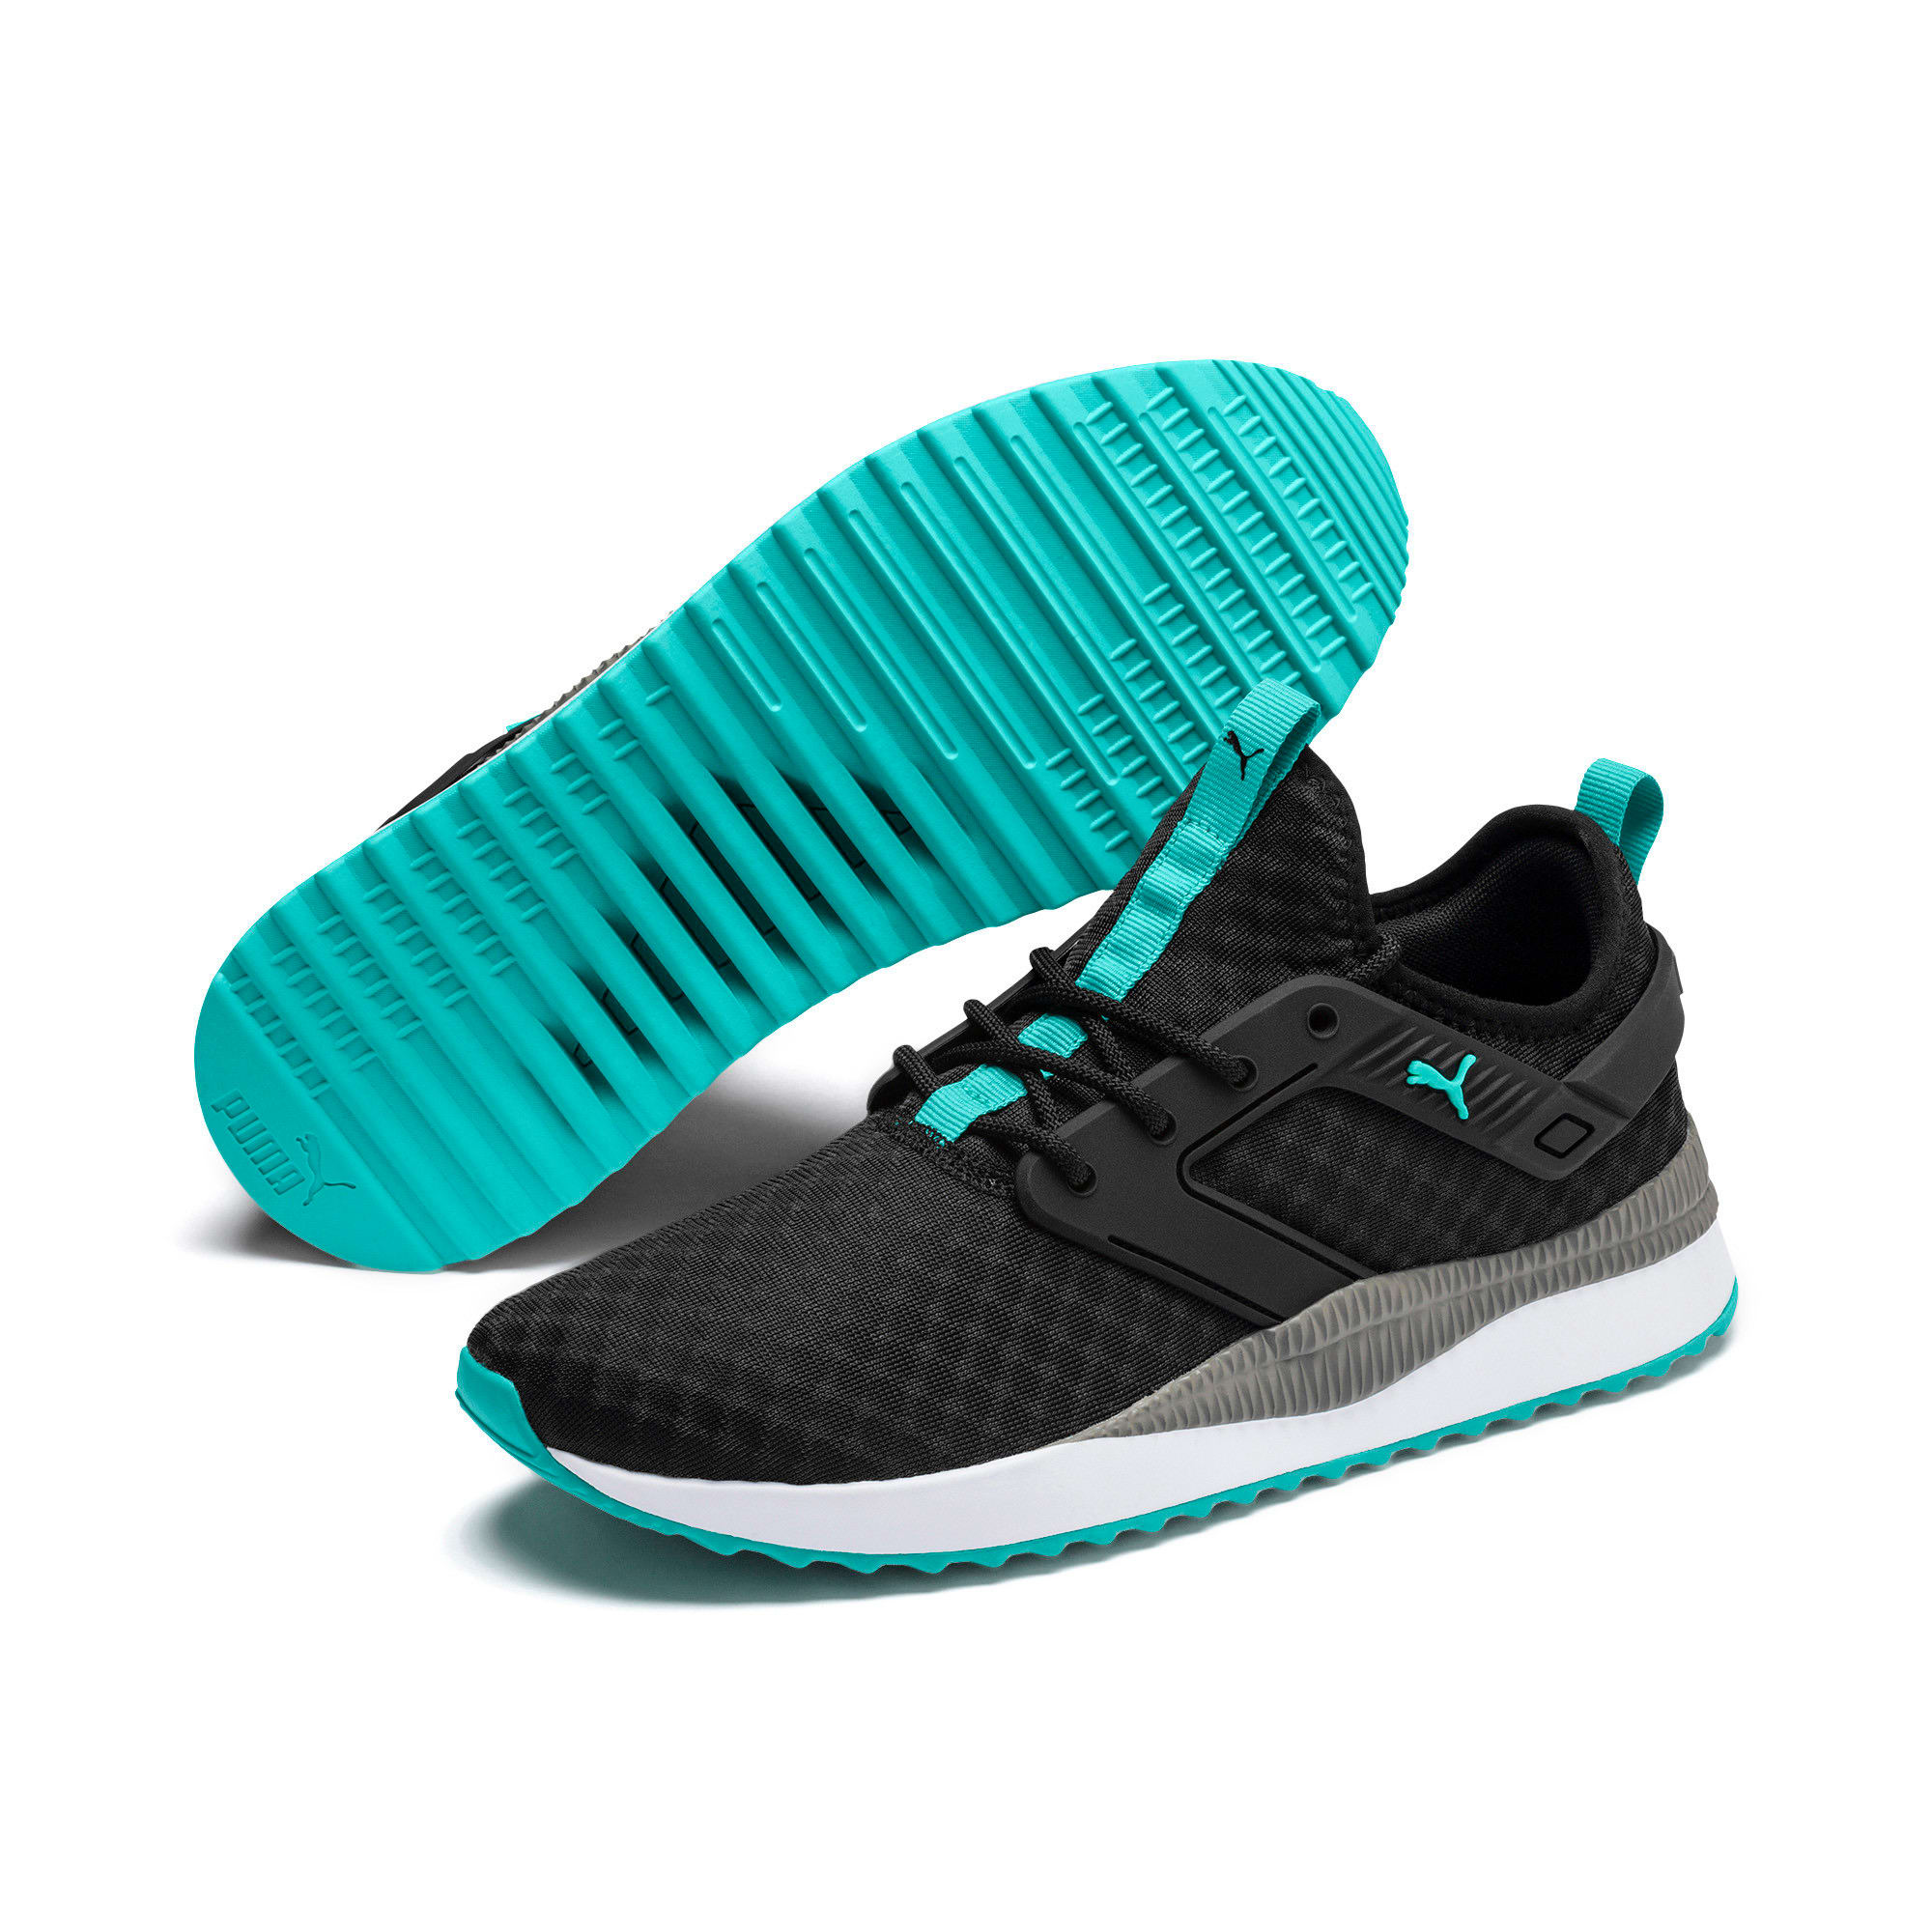 Thumbnail 3 of Pacer Next Excel Core Sneakers, Puma Black-Blue Turquoise, medium